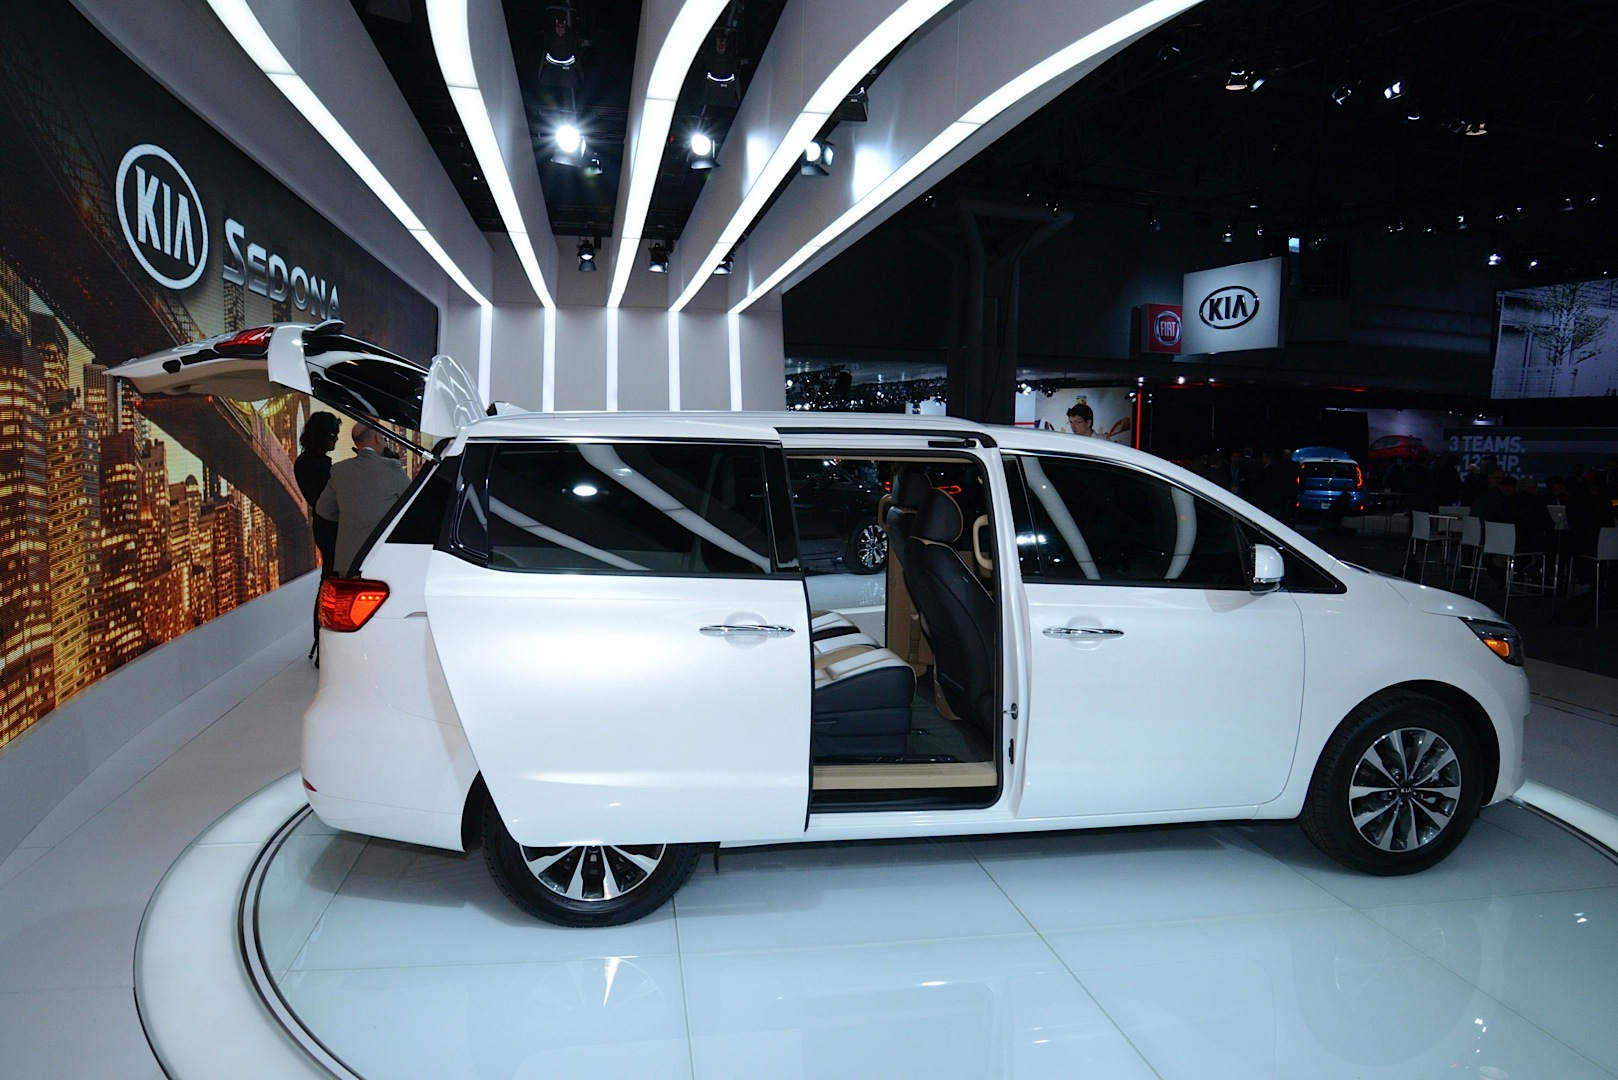 New 2015 Kia Sedona Looks Ready To Take On The Town Amp Country Live Photos